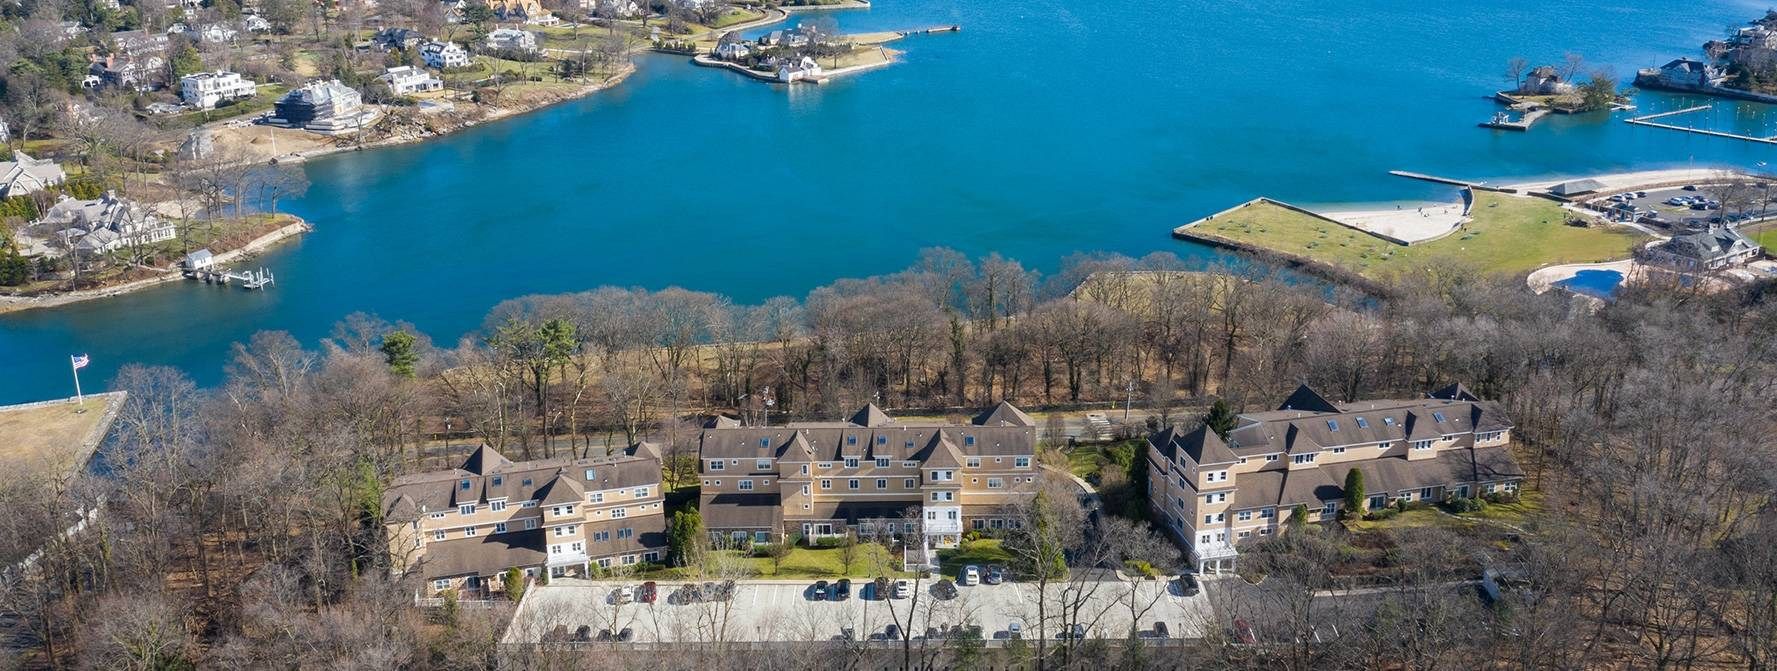 Aerial view of property overlooking lake view